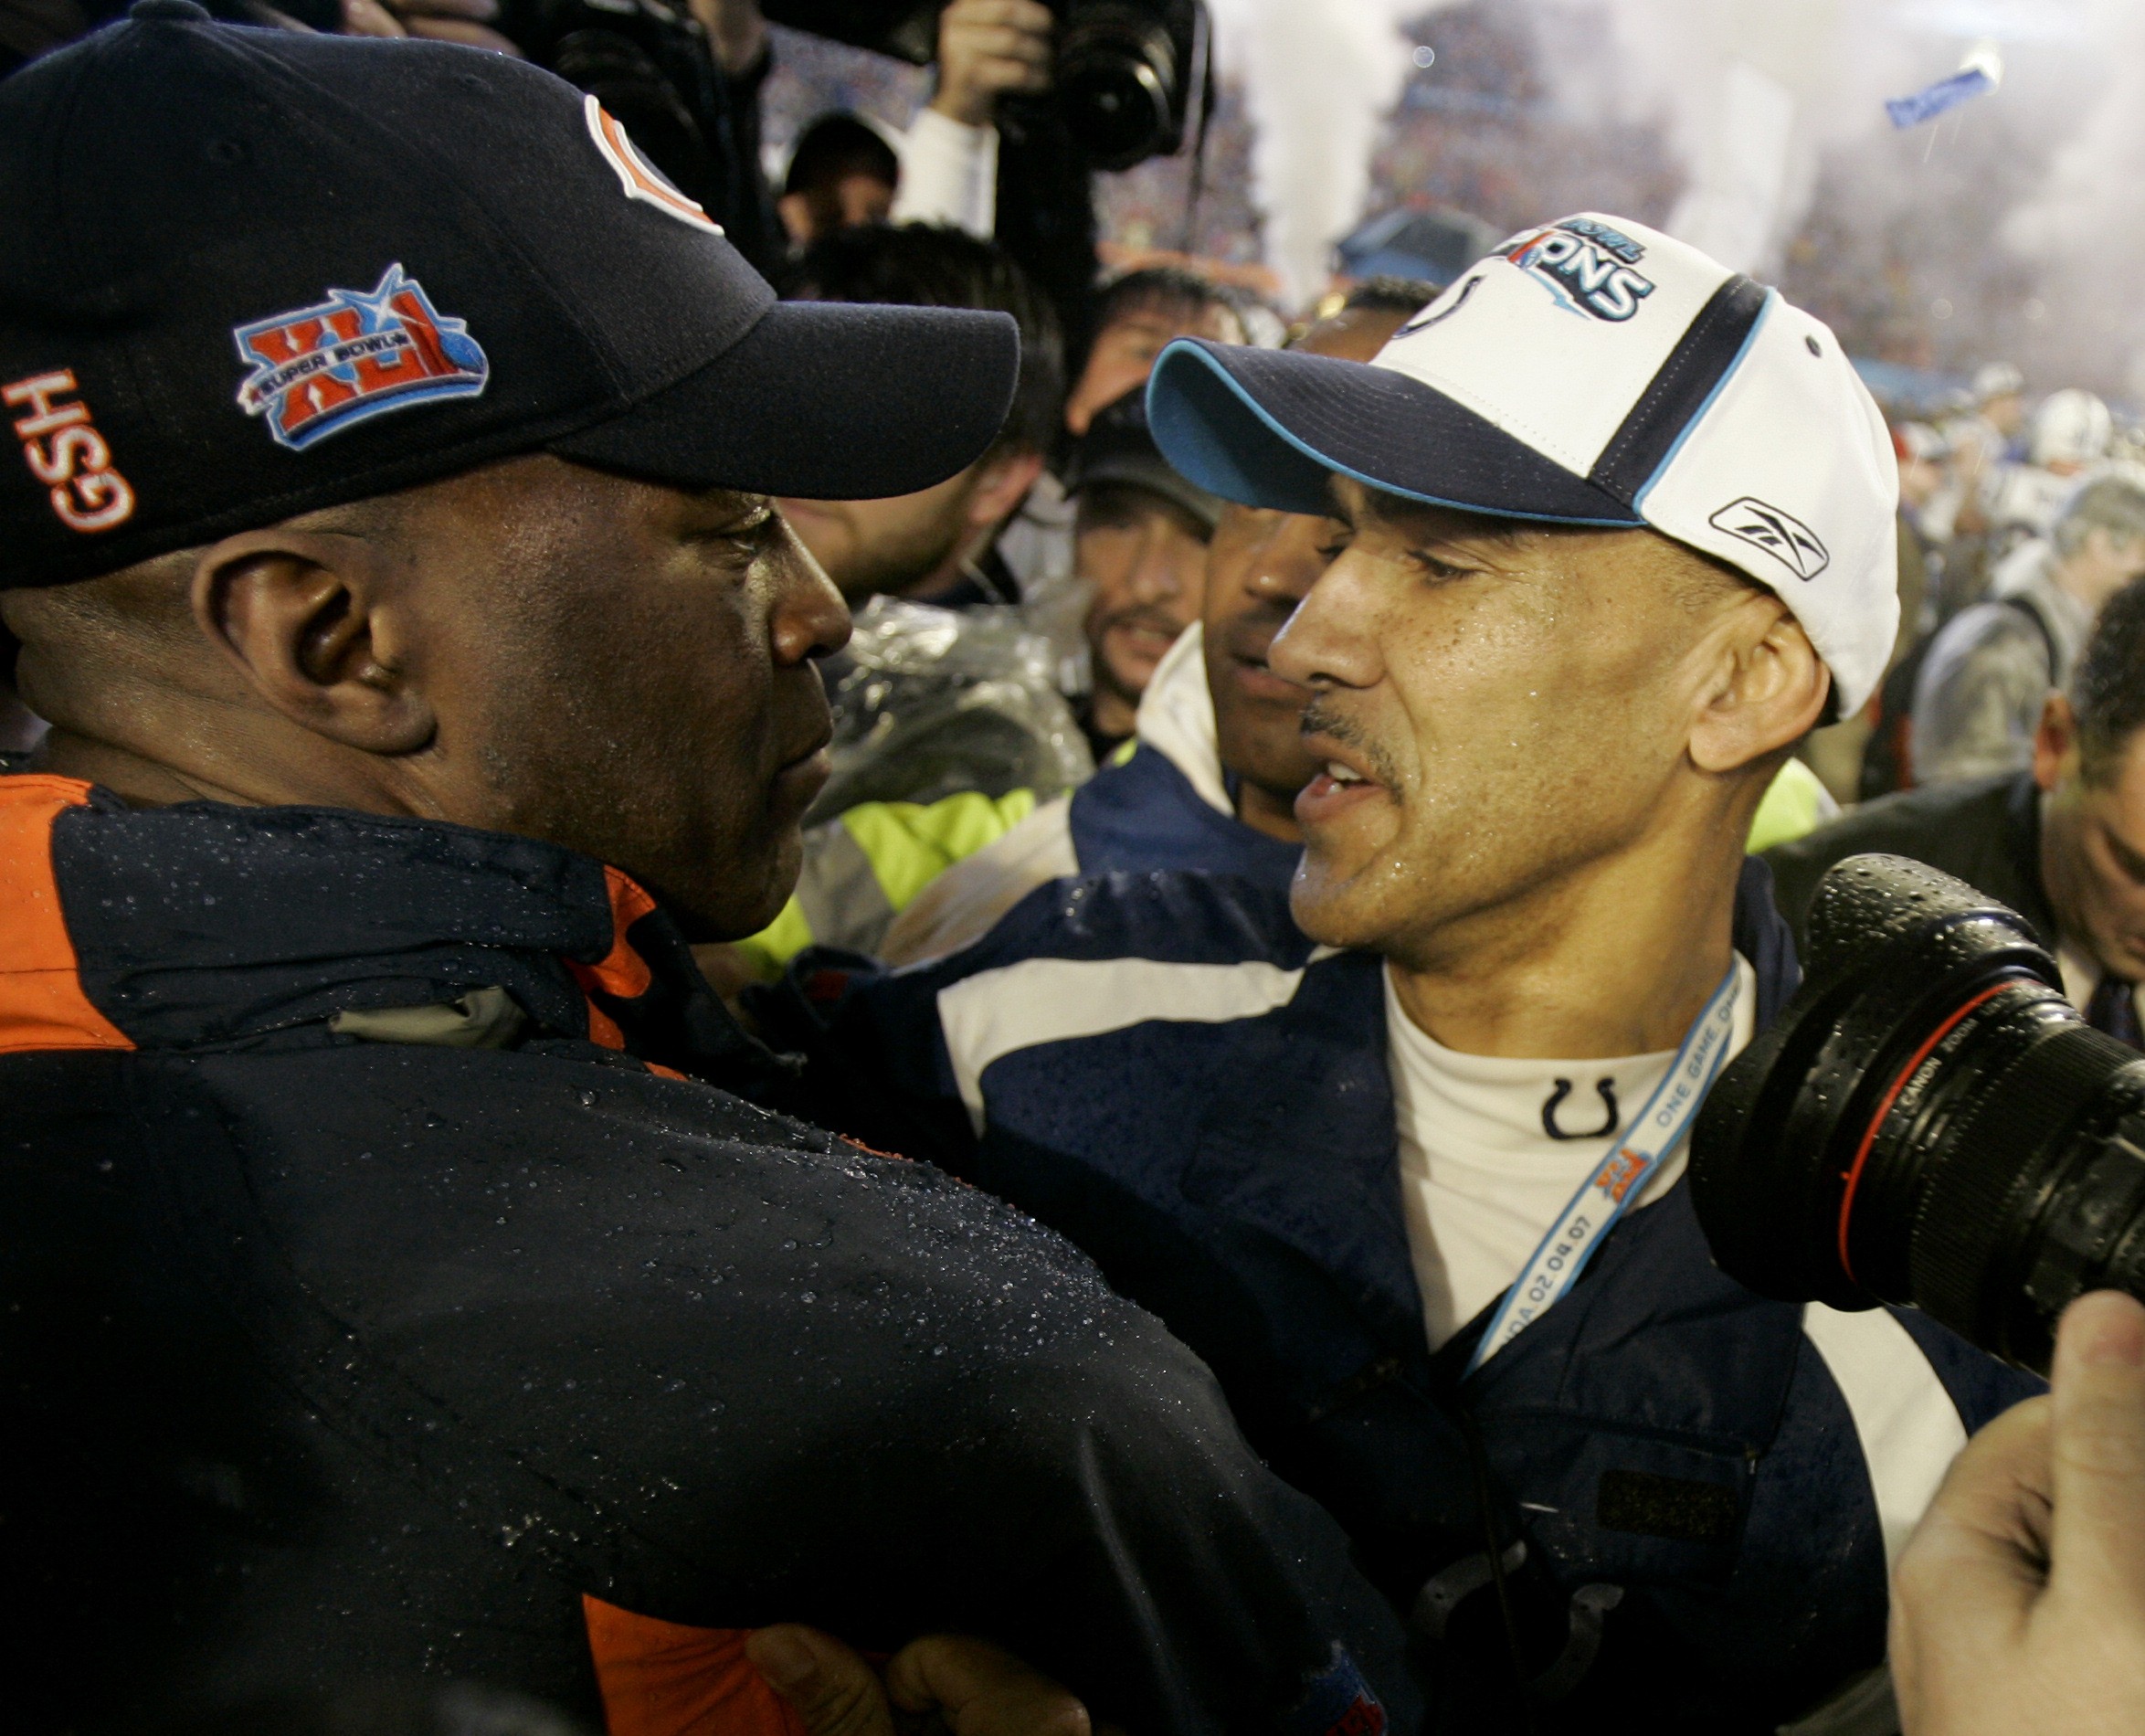 Indianapolis Colts head coach Tony Dungy, right, hugs Chicago Bears head coach Lovie Smith at the end of the Super Bowl XLI football game at Dolphin Stadium in Miami.